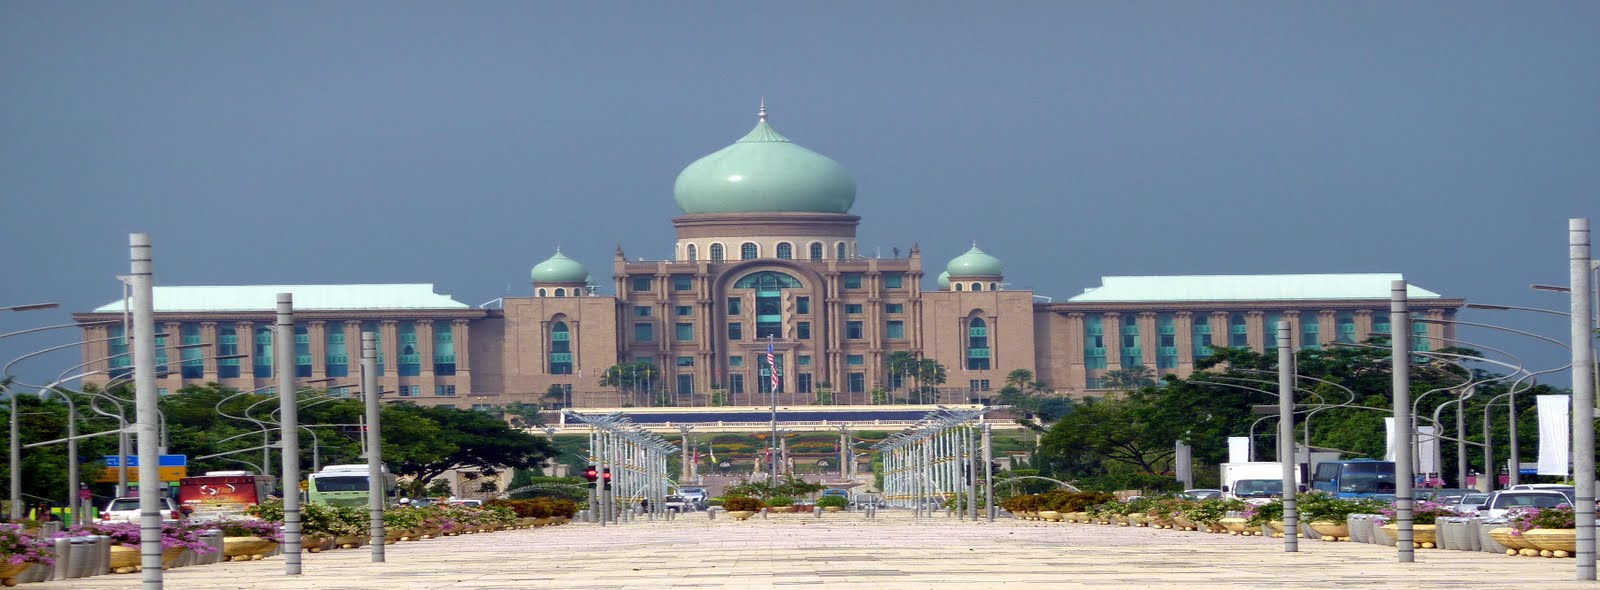 Asia Best Travel, Putrajaya